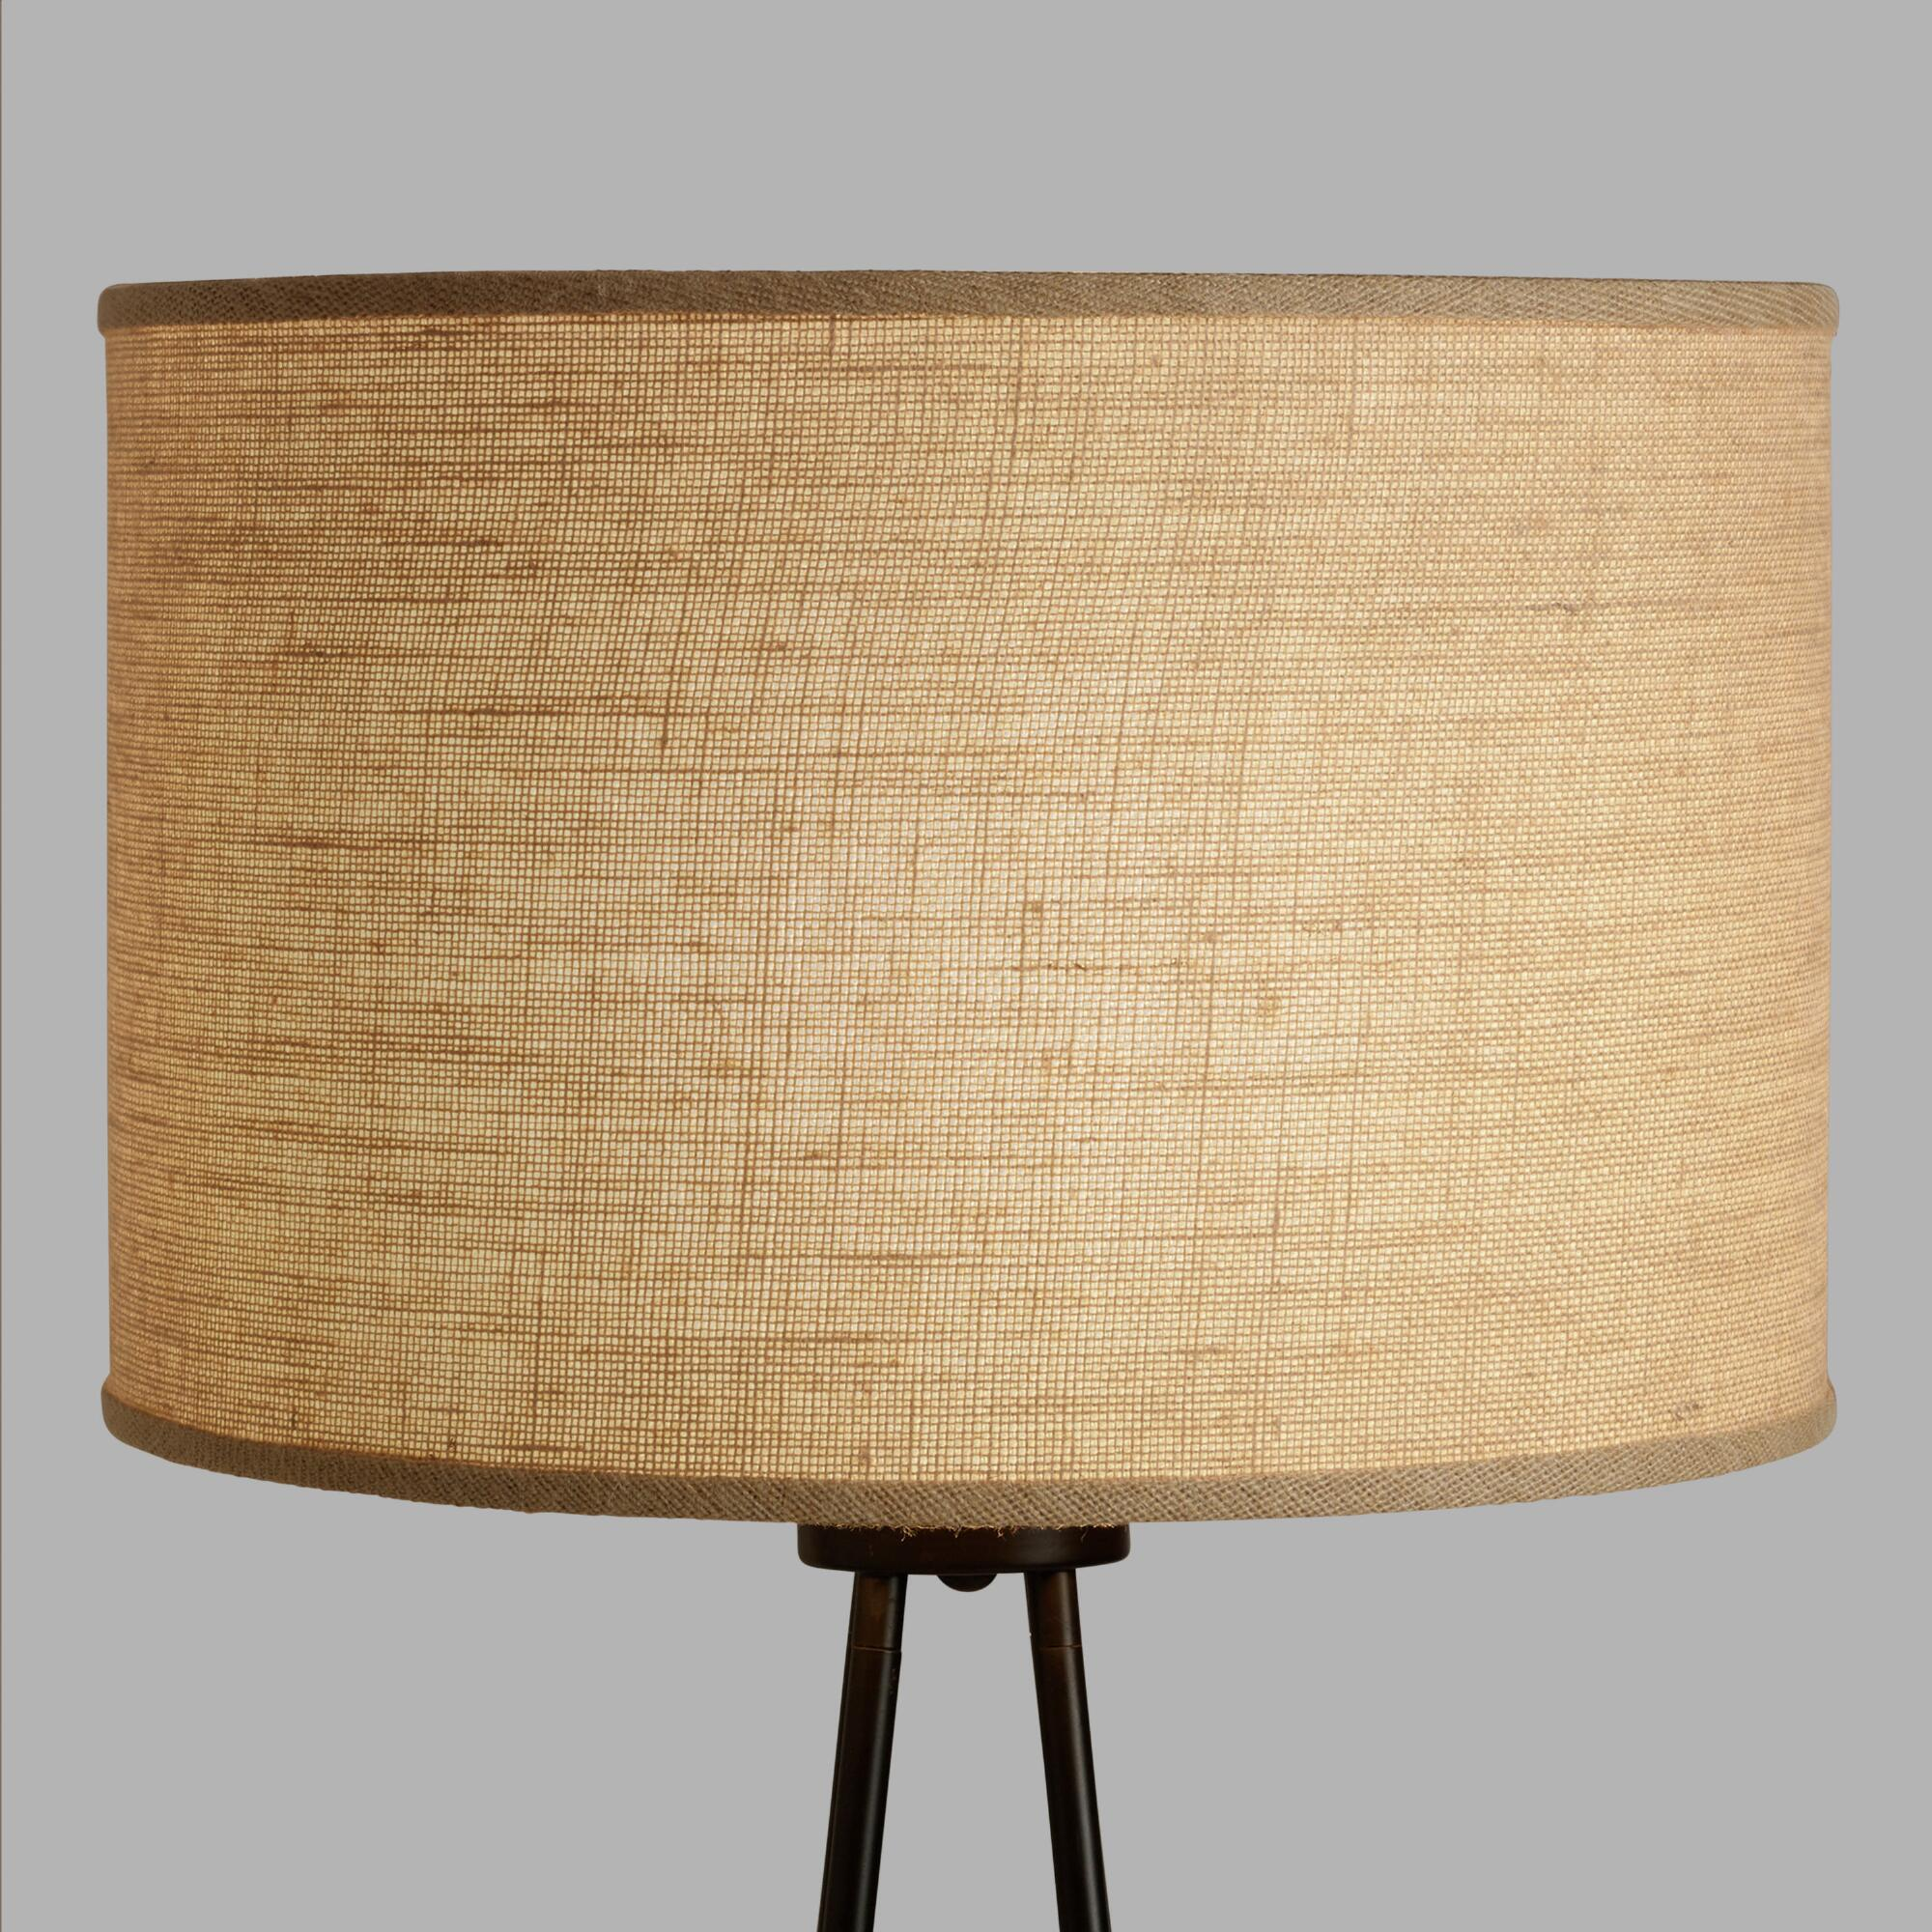 Floor lamps and tall task lamps world market natural burlap drum floor lamp shade aloadofball